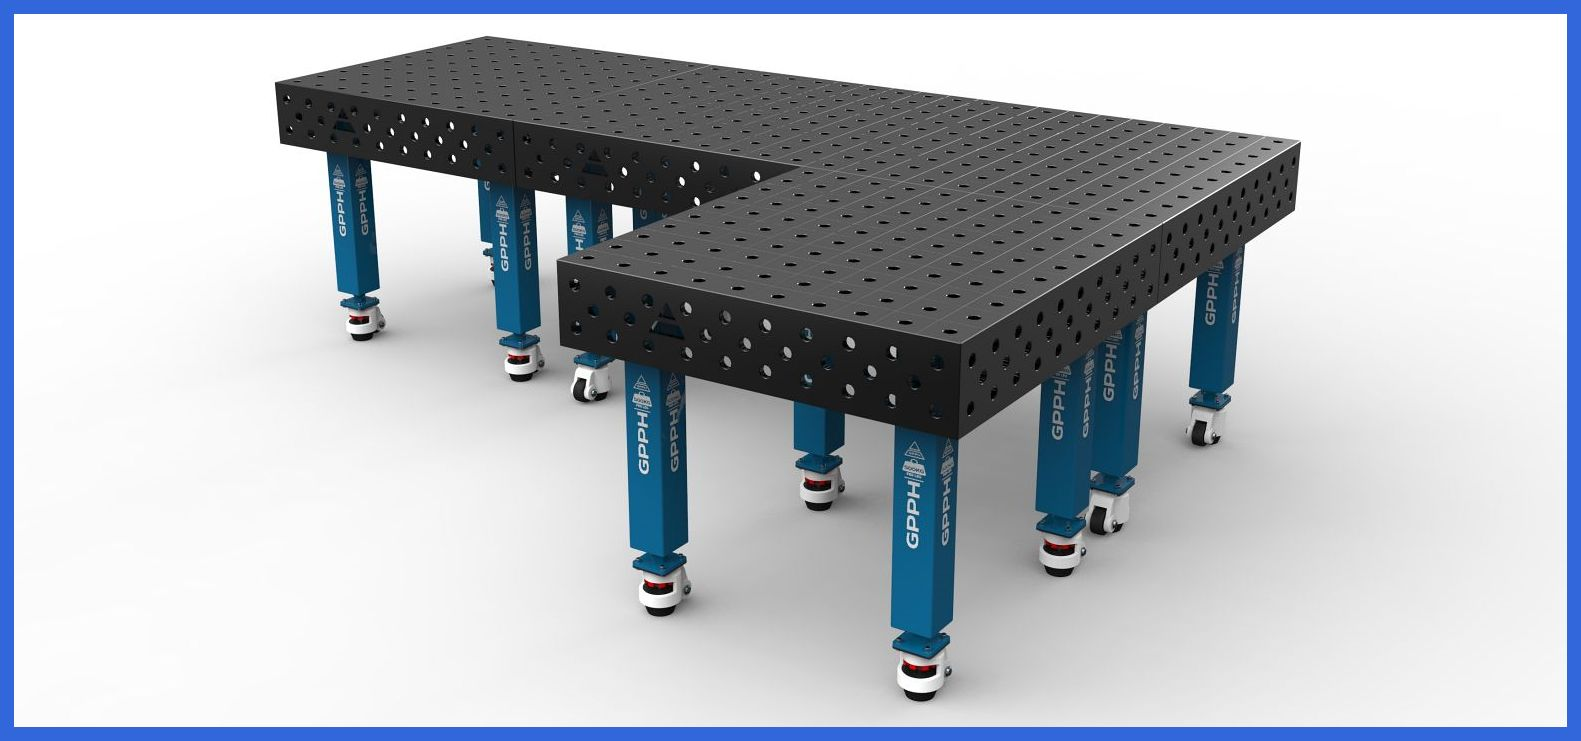 Tables can be combined freely to extend a working surface.